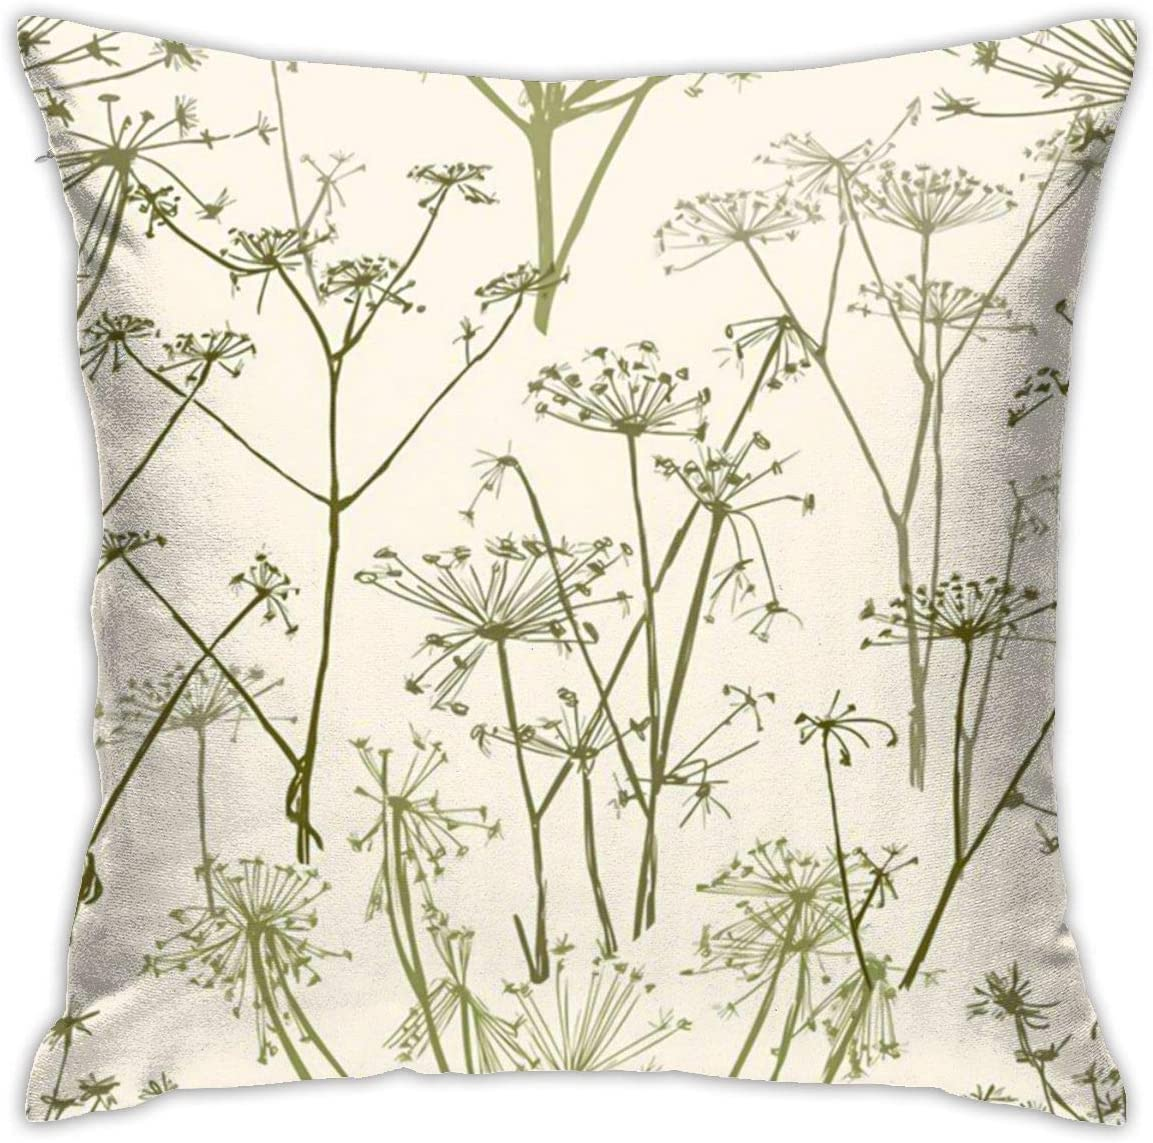 Anya Topshop 80s 90s Decorative Pillowcases Fall Home Decor Cushion Cover Vintage Umbrella Flowers Simpleism Natural Plant Drawing Throw Pillow Cover Comfort For Living Room Office 18x18 Inch Home Kitchen